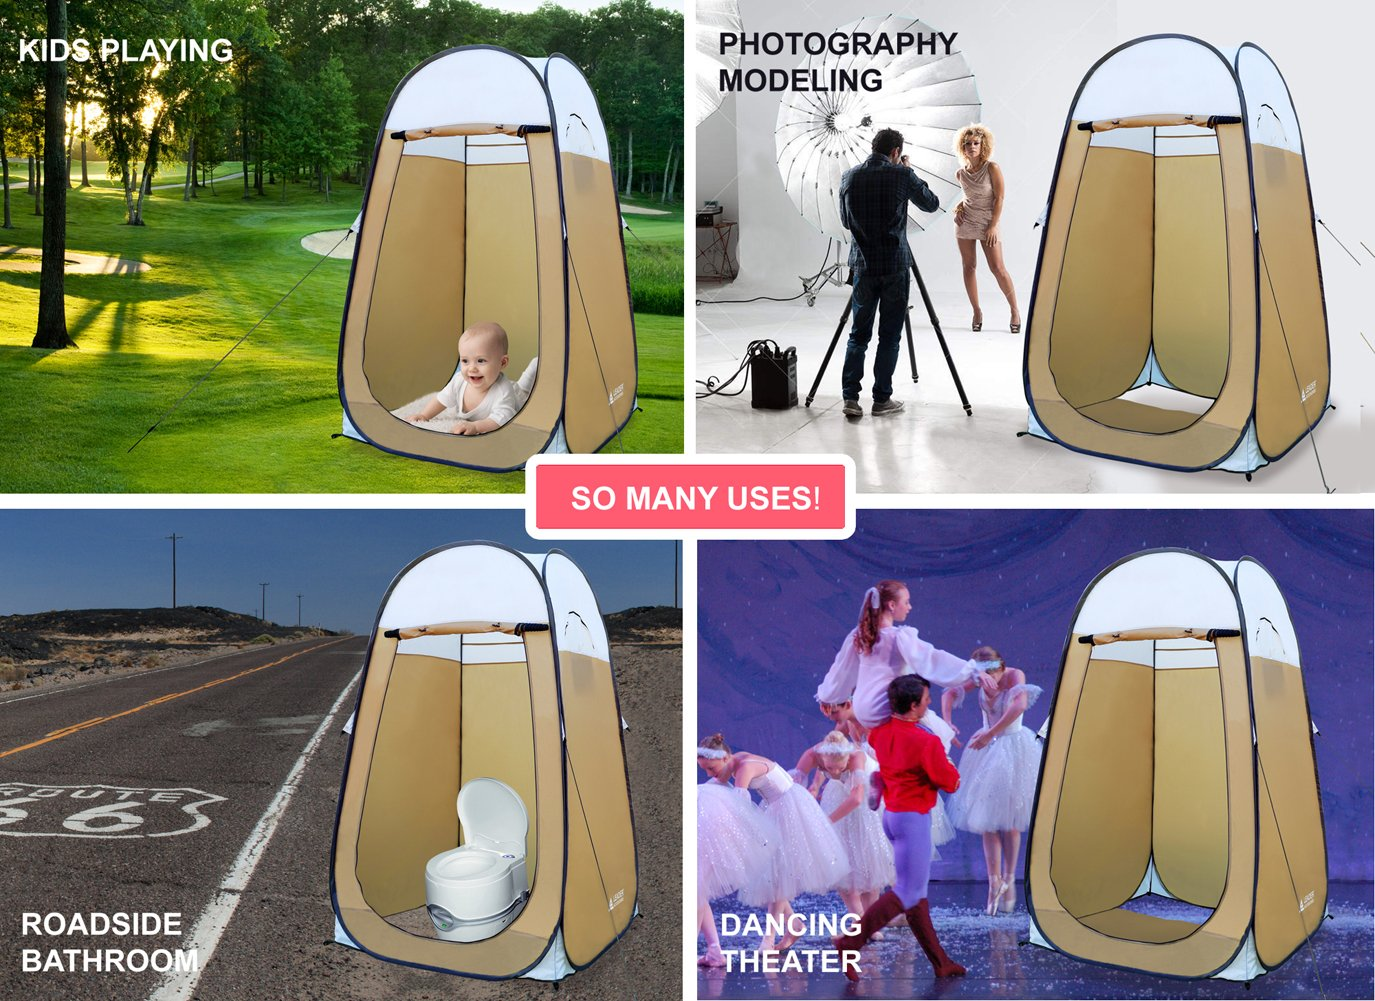 H Leader Accessories Pop Up Shower Tent Dressing Changing Tent Pod Toilet Tent 4 x 4 x 78 Big Size